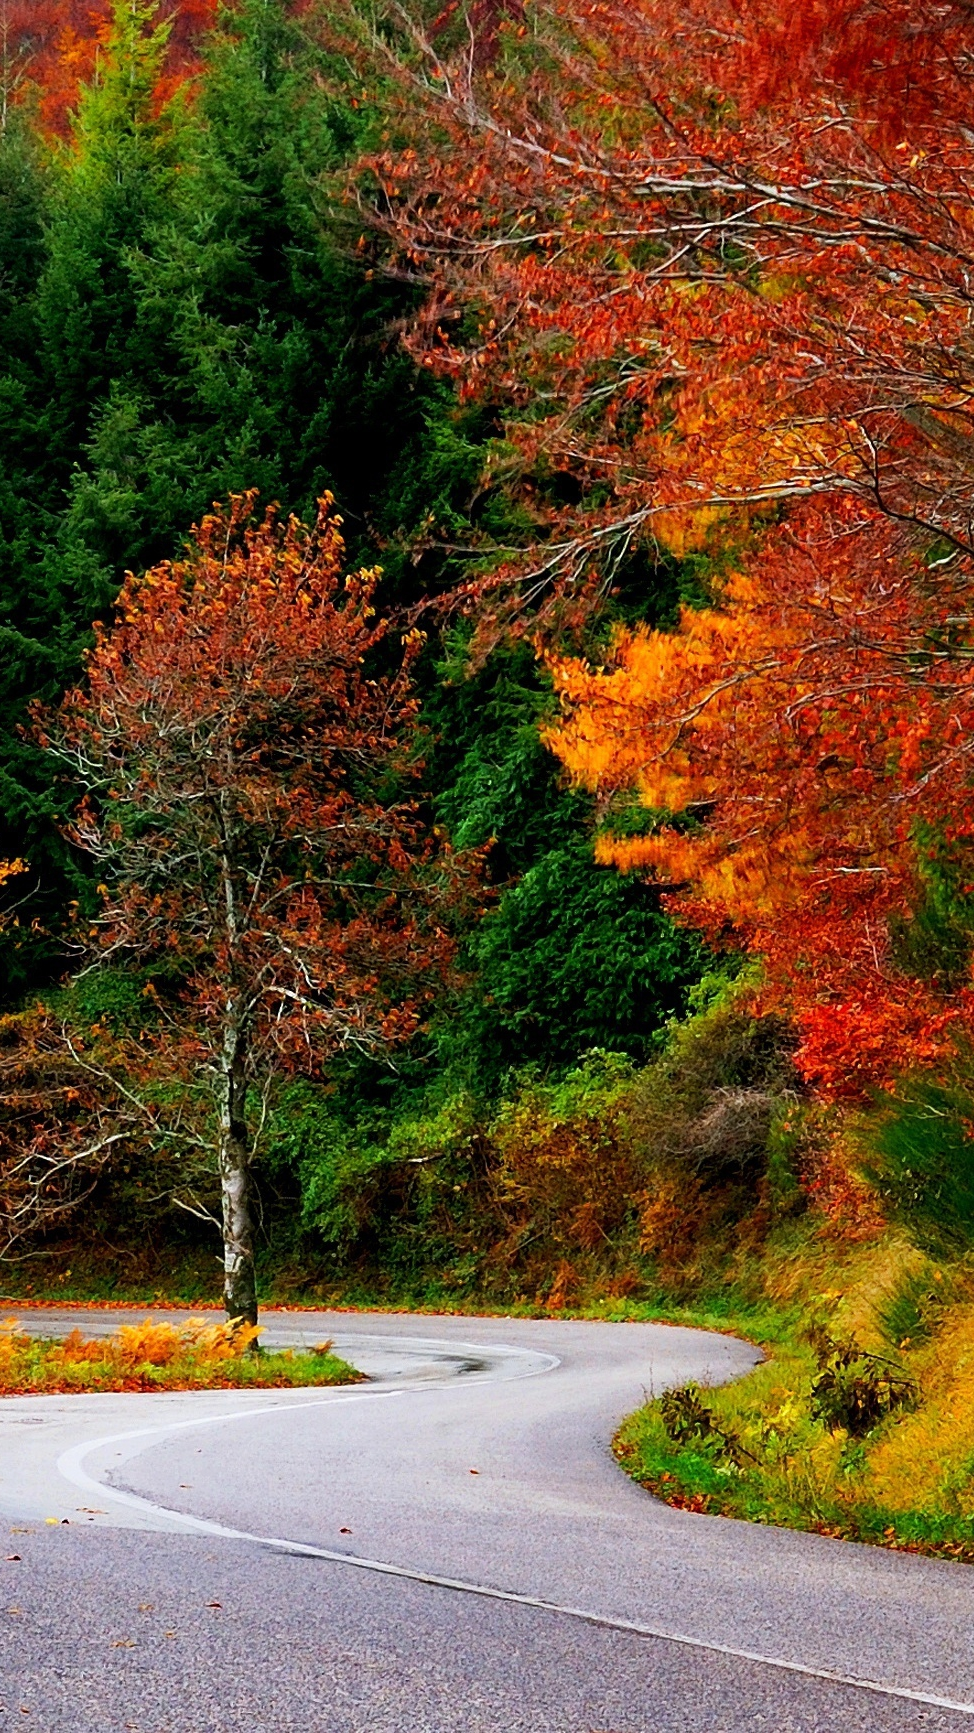 forest-autumn-fall-road-leaves-trees-colorful-nature ...